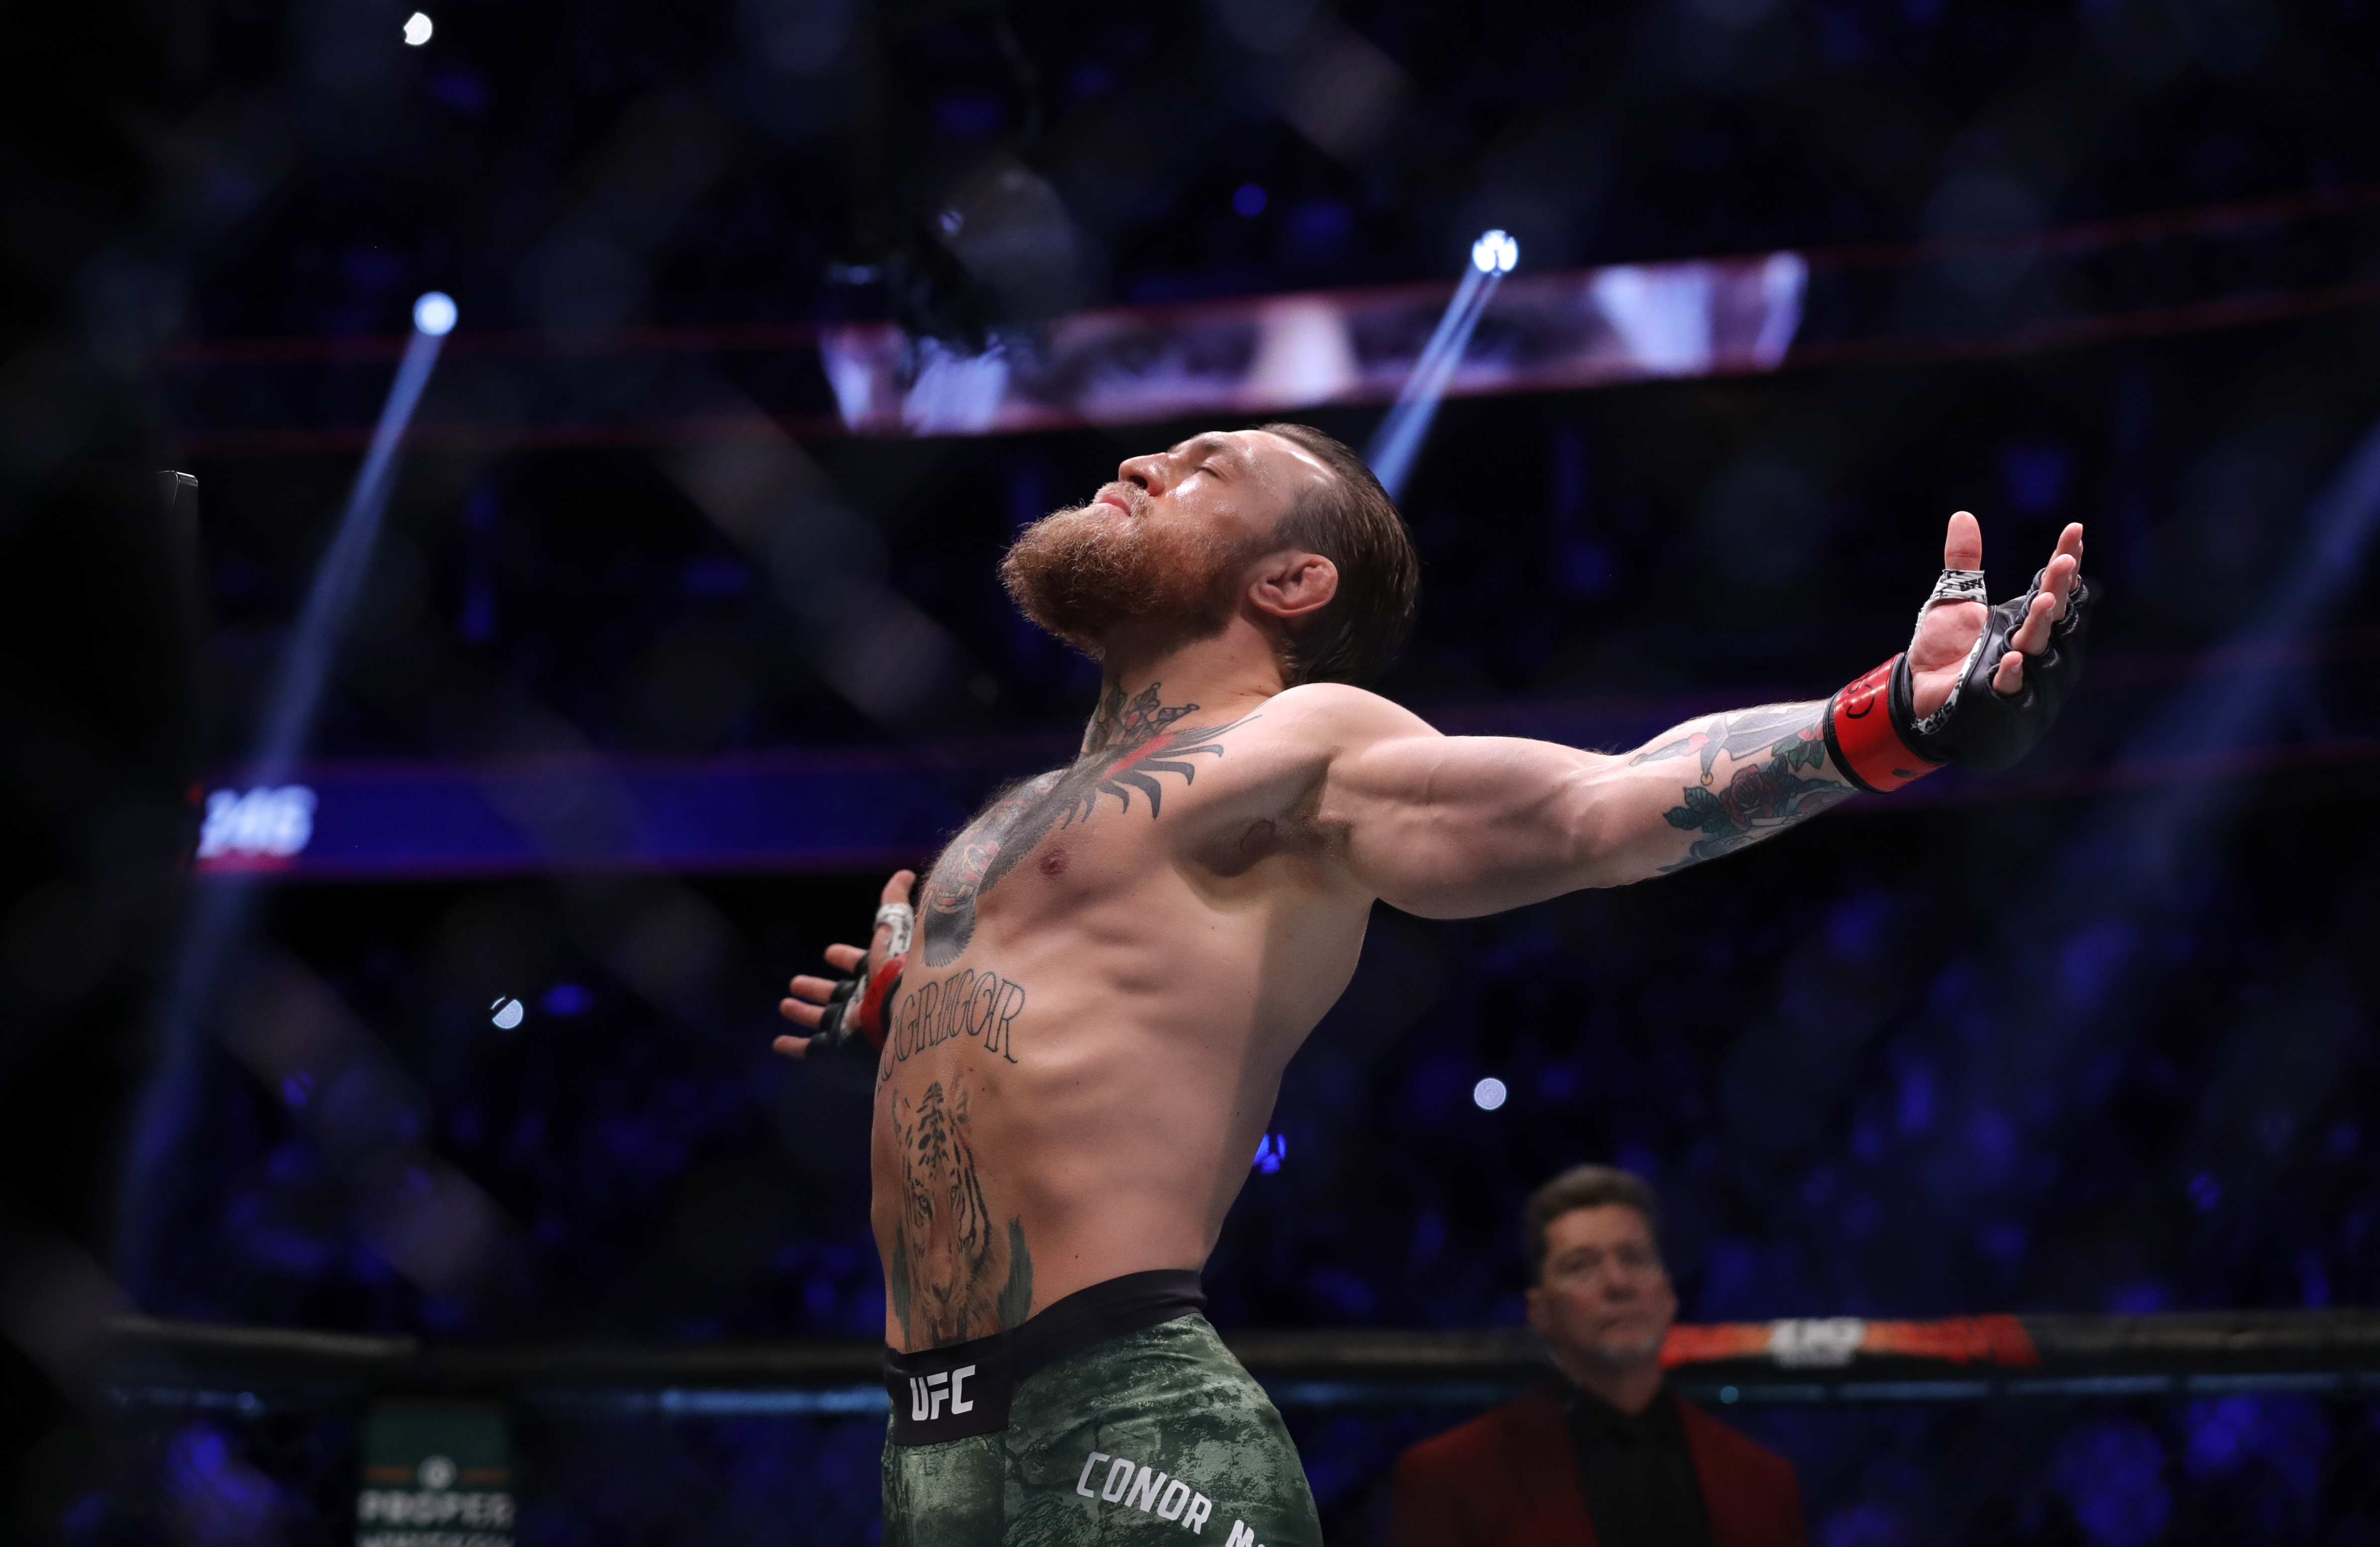 Conor McGregor soaks in the moment before a UFC fight